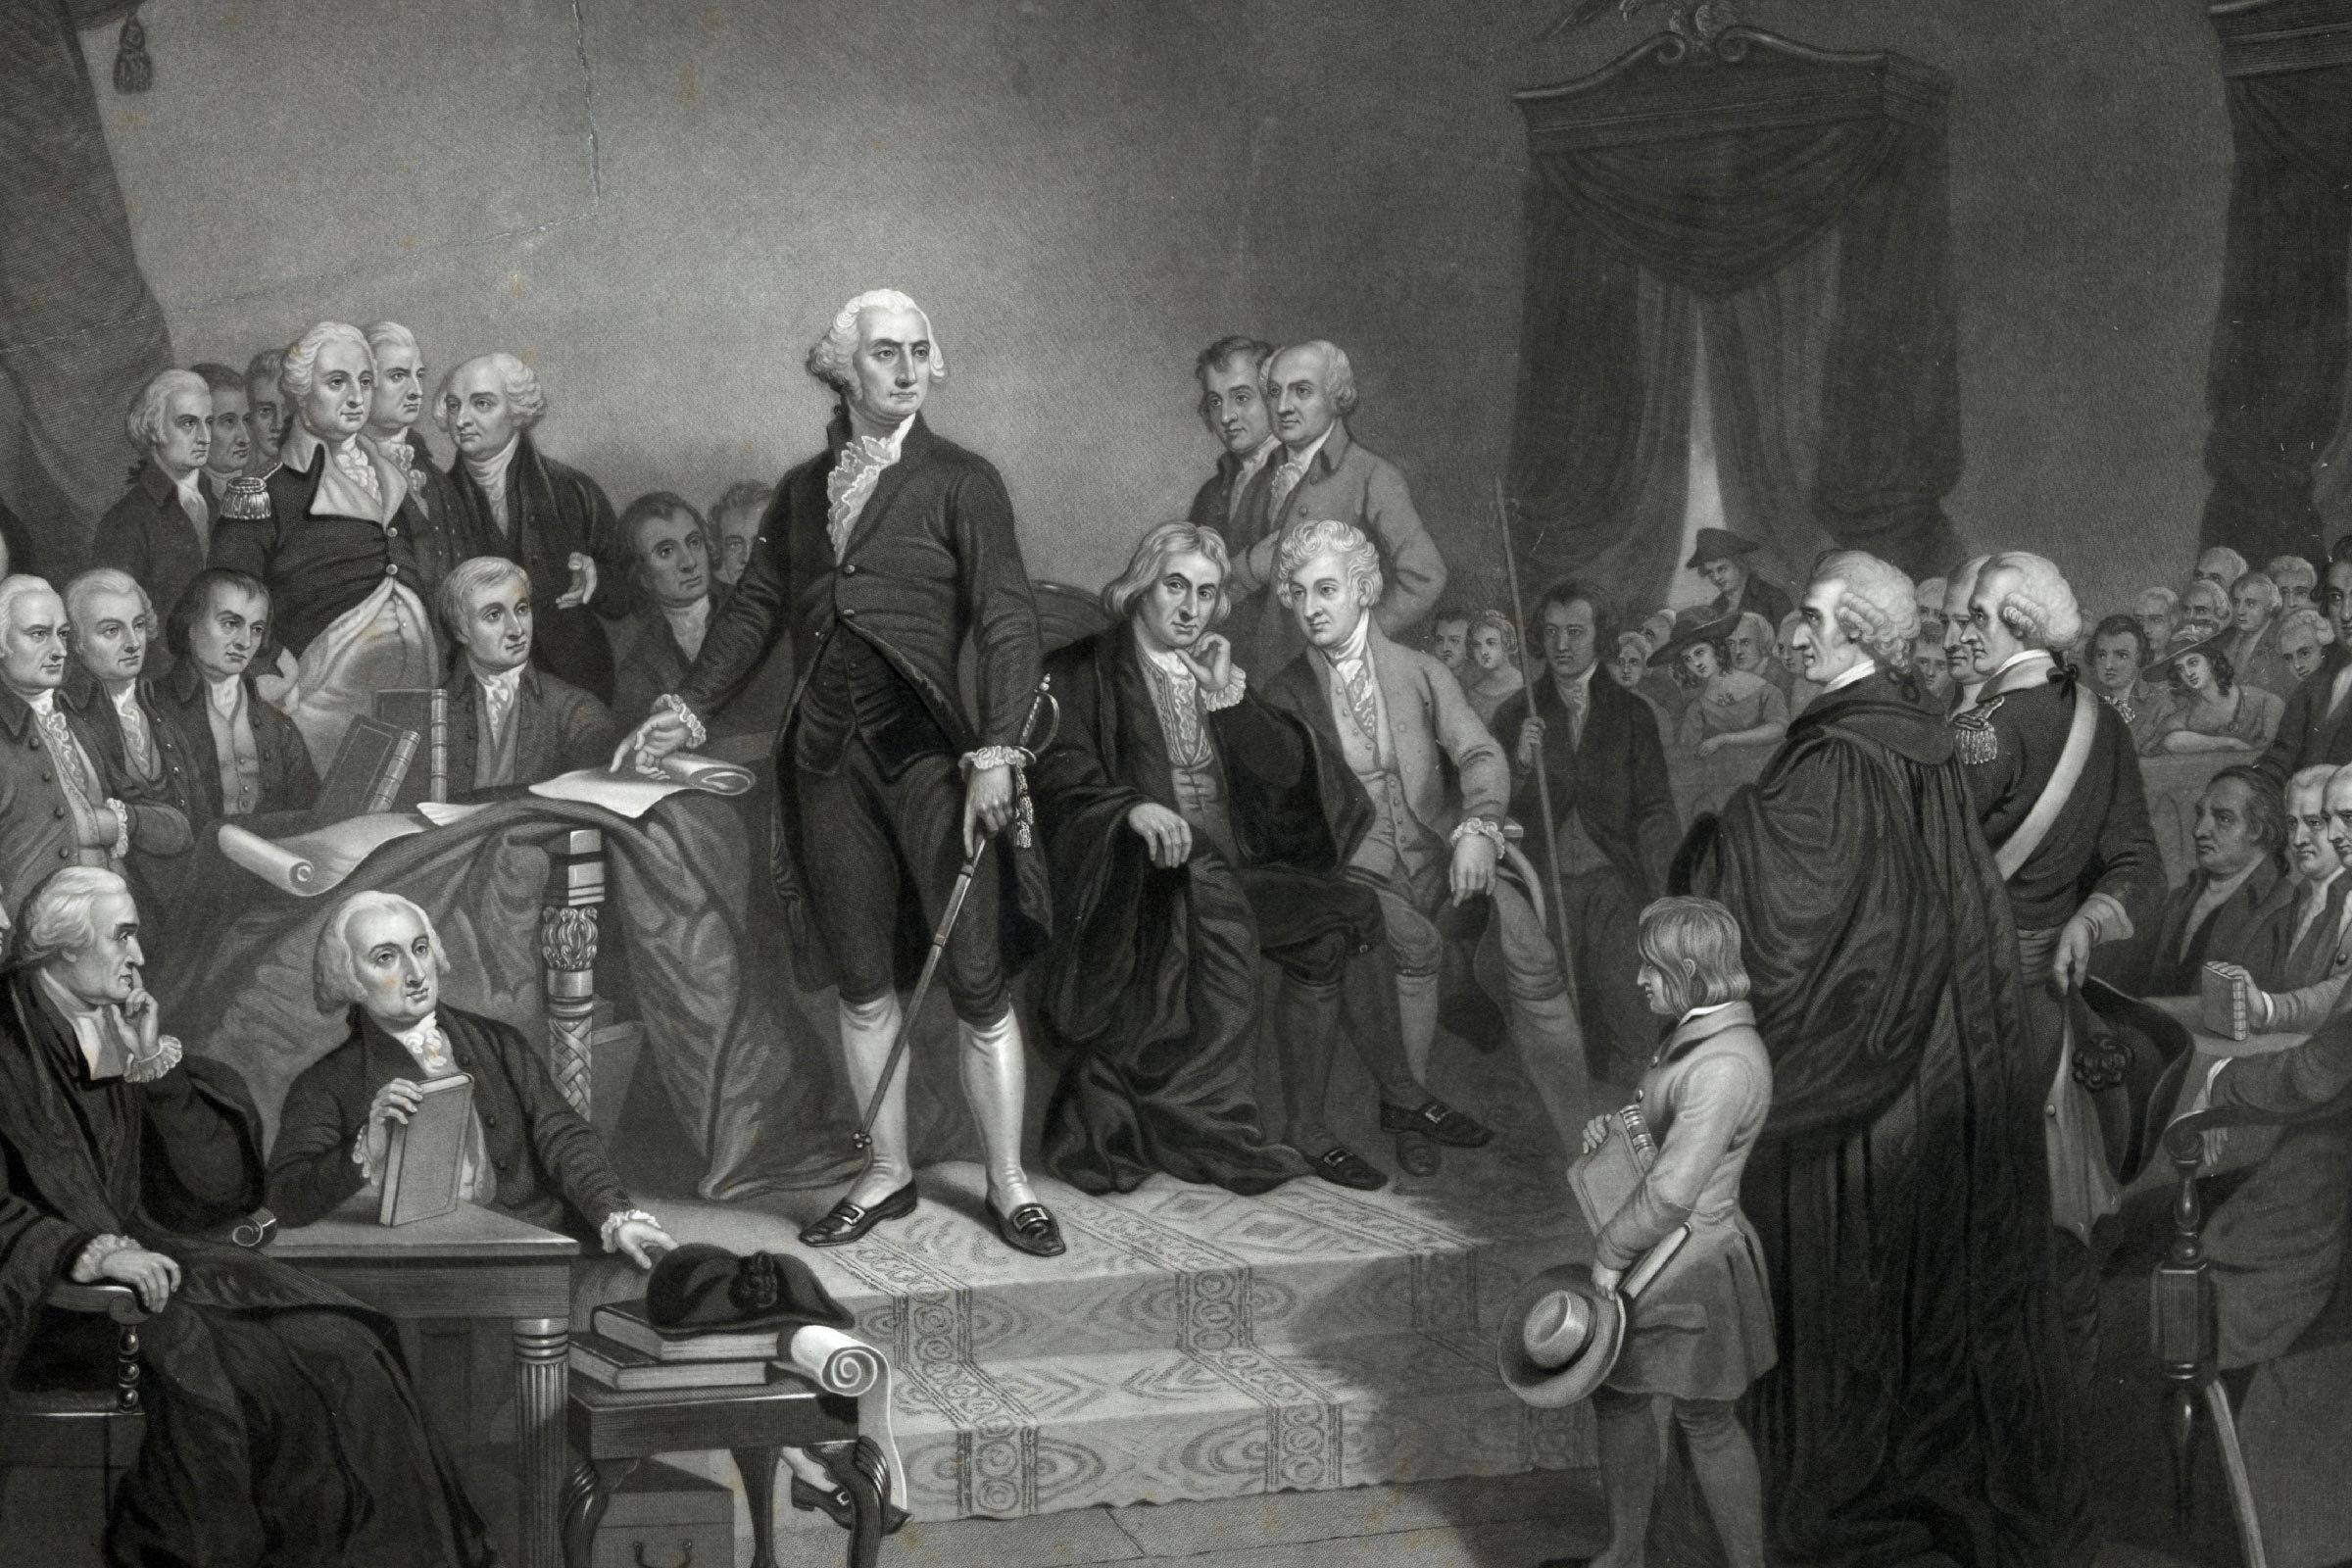 Washington delivering his inaugural address in the old city hall, New York' George Washington delivering his inaugural address before members of the Congress. Includes text of speech.